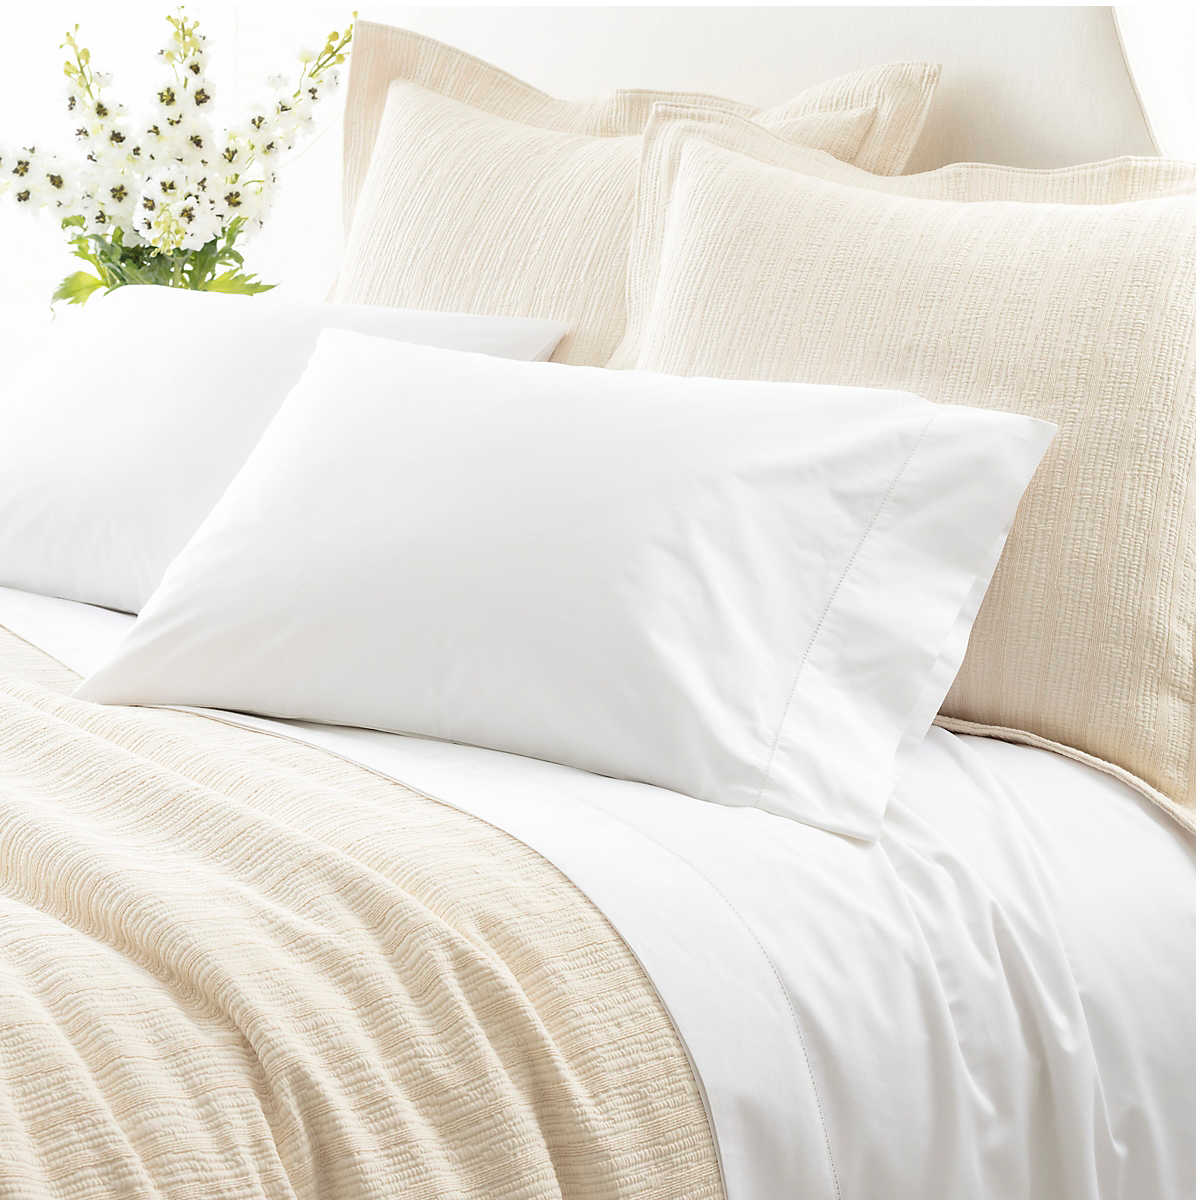 Best Er Clic Hemsch White Sheet Set